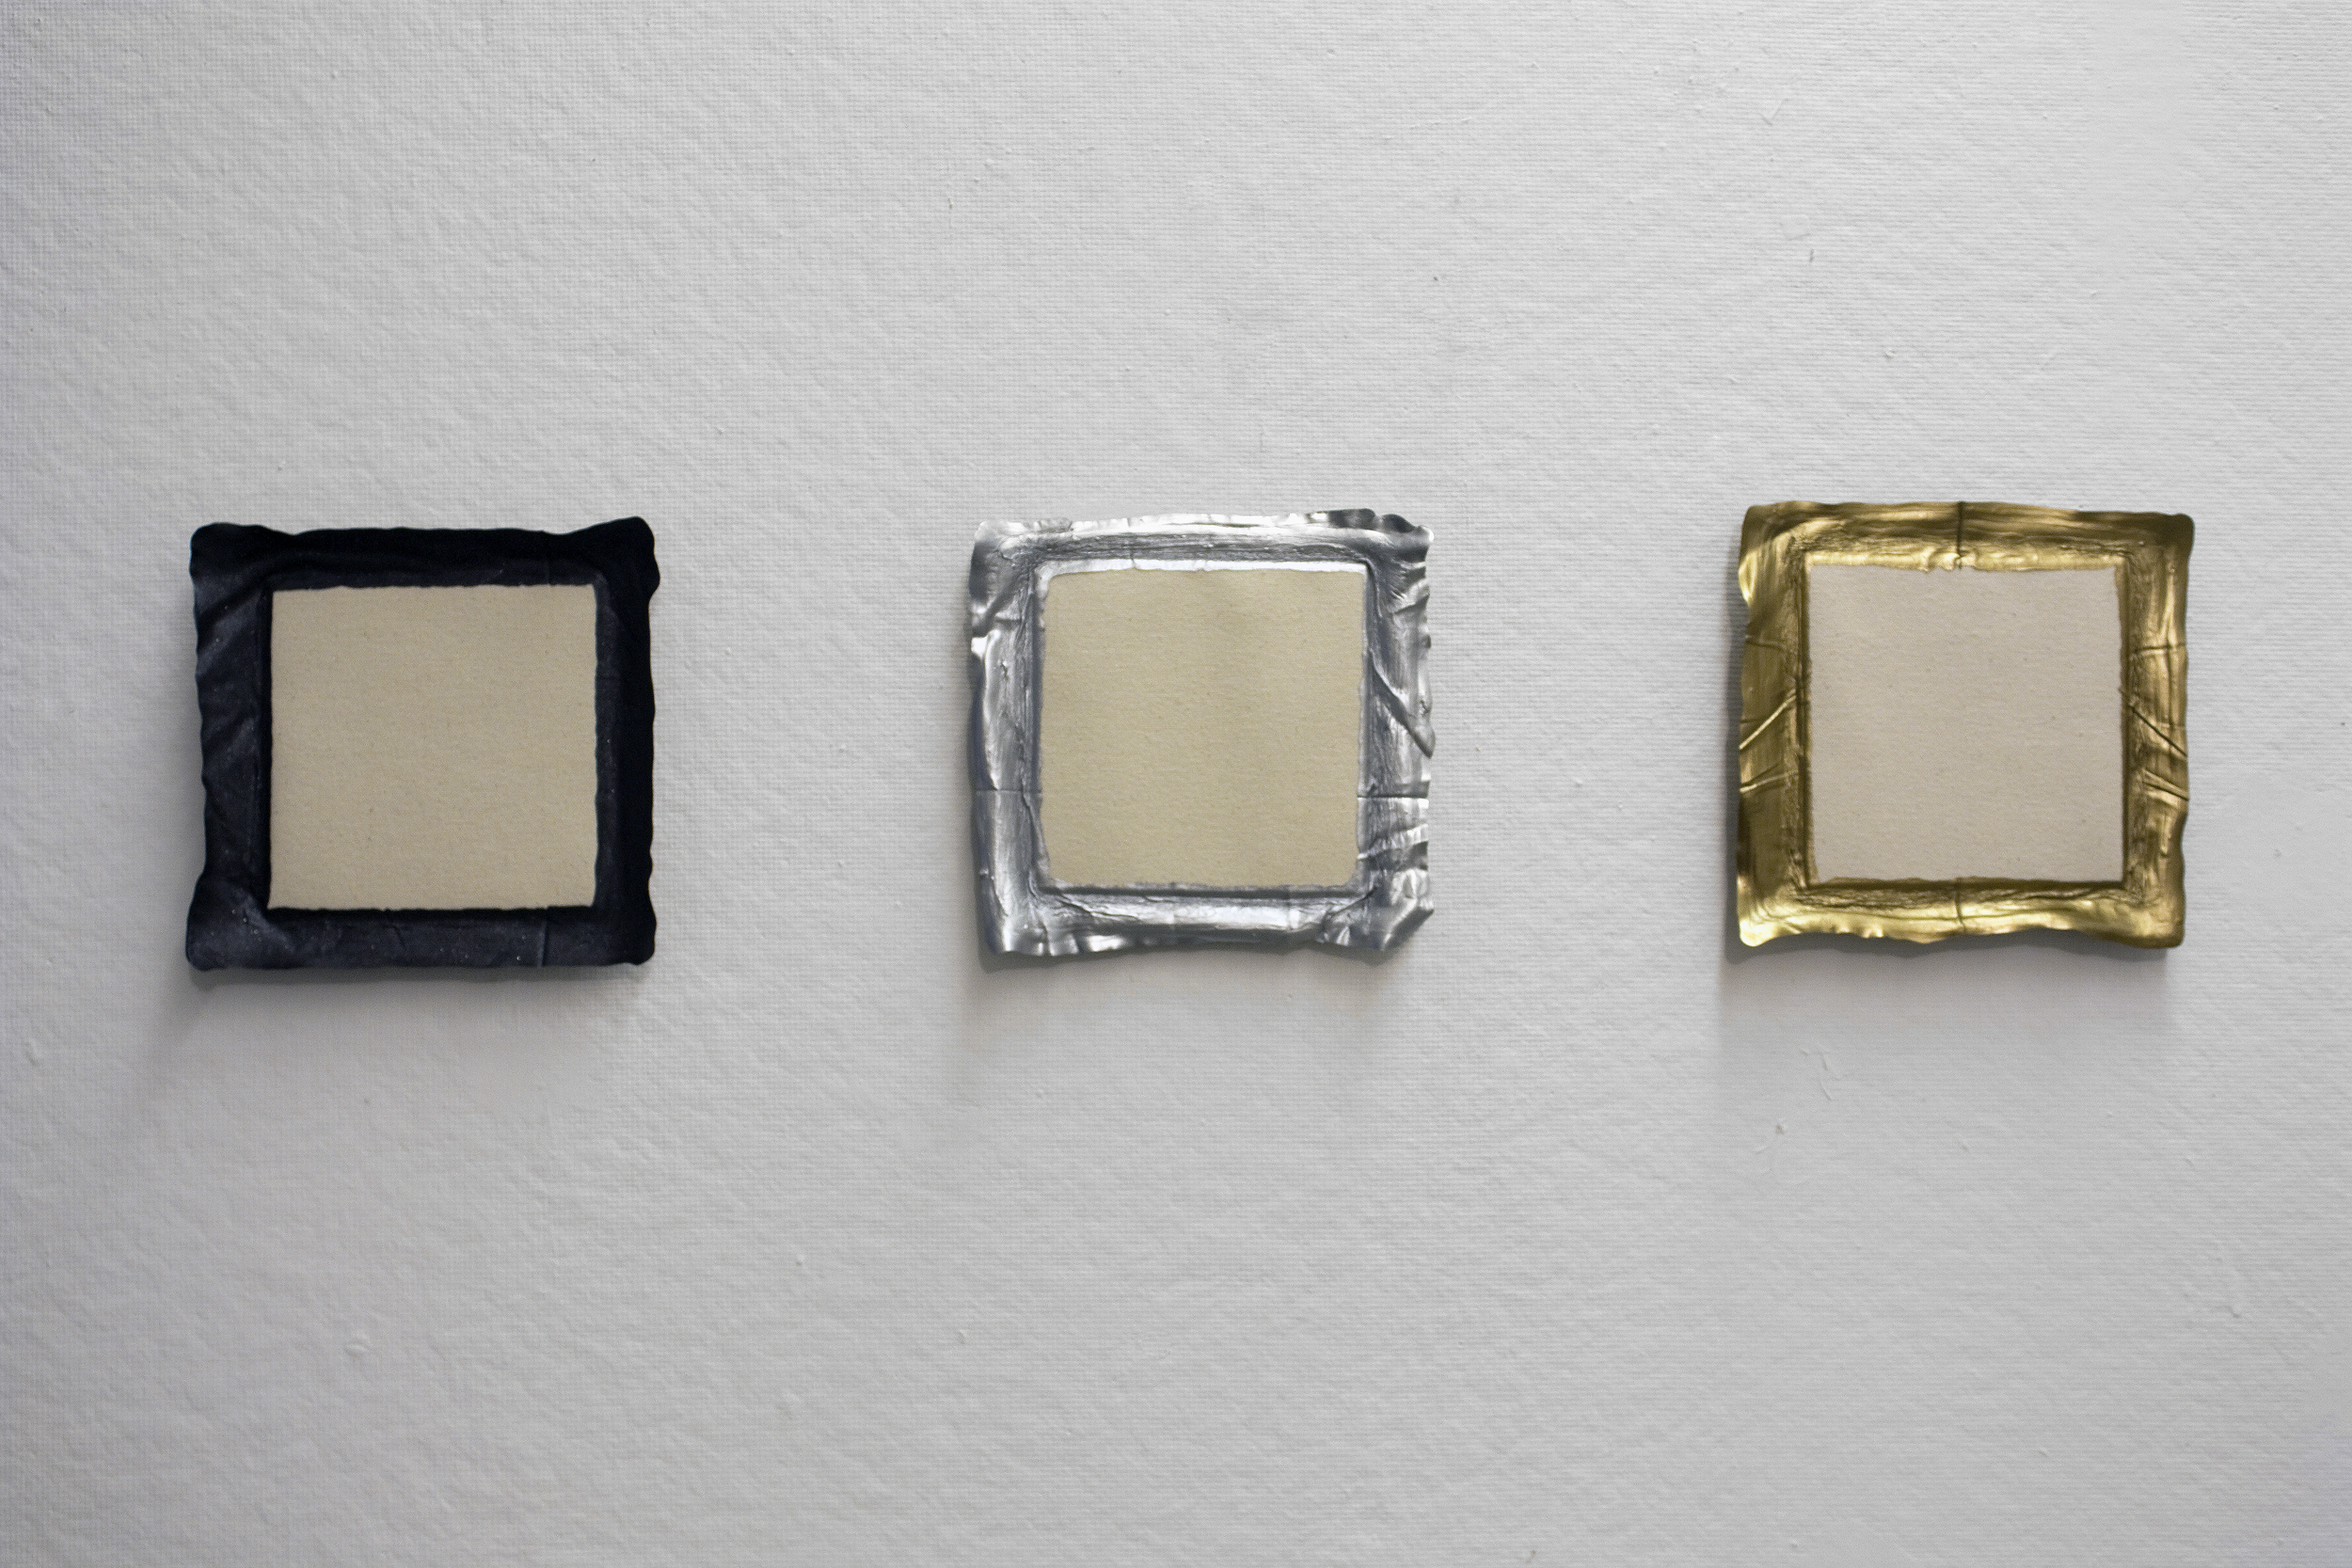 Untitled (Metal); Untitled (Silver); Untitled (Bronze), acrylic on canvas, 2010, 8 x 8in | 20 x 20cm each